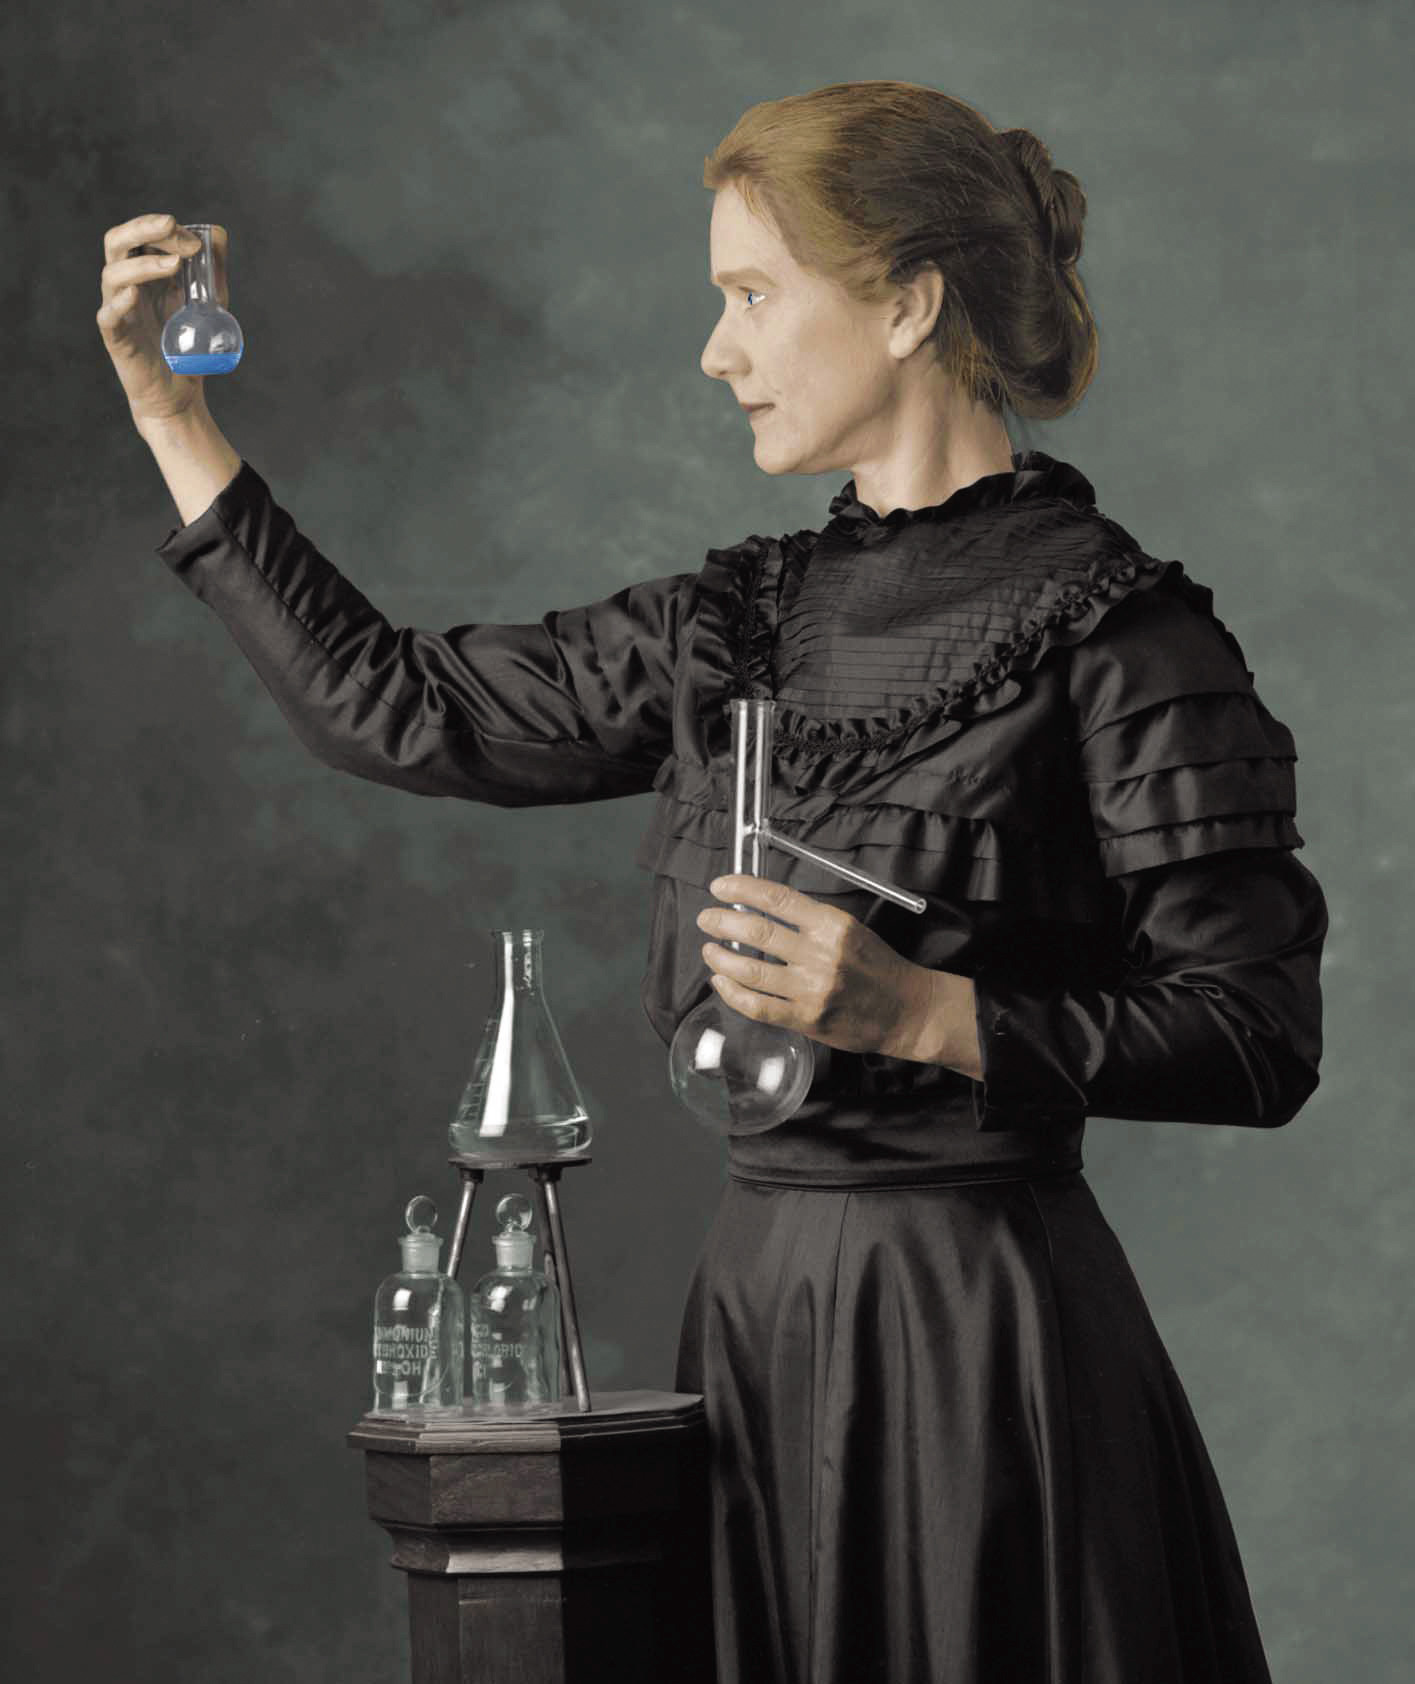 http://djunaedird.files.wordpress.com/2011/11/marie_curie_color.jpg